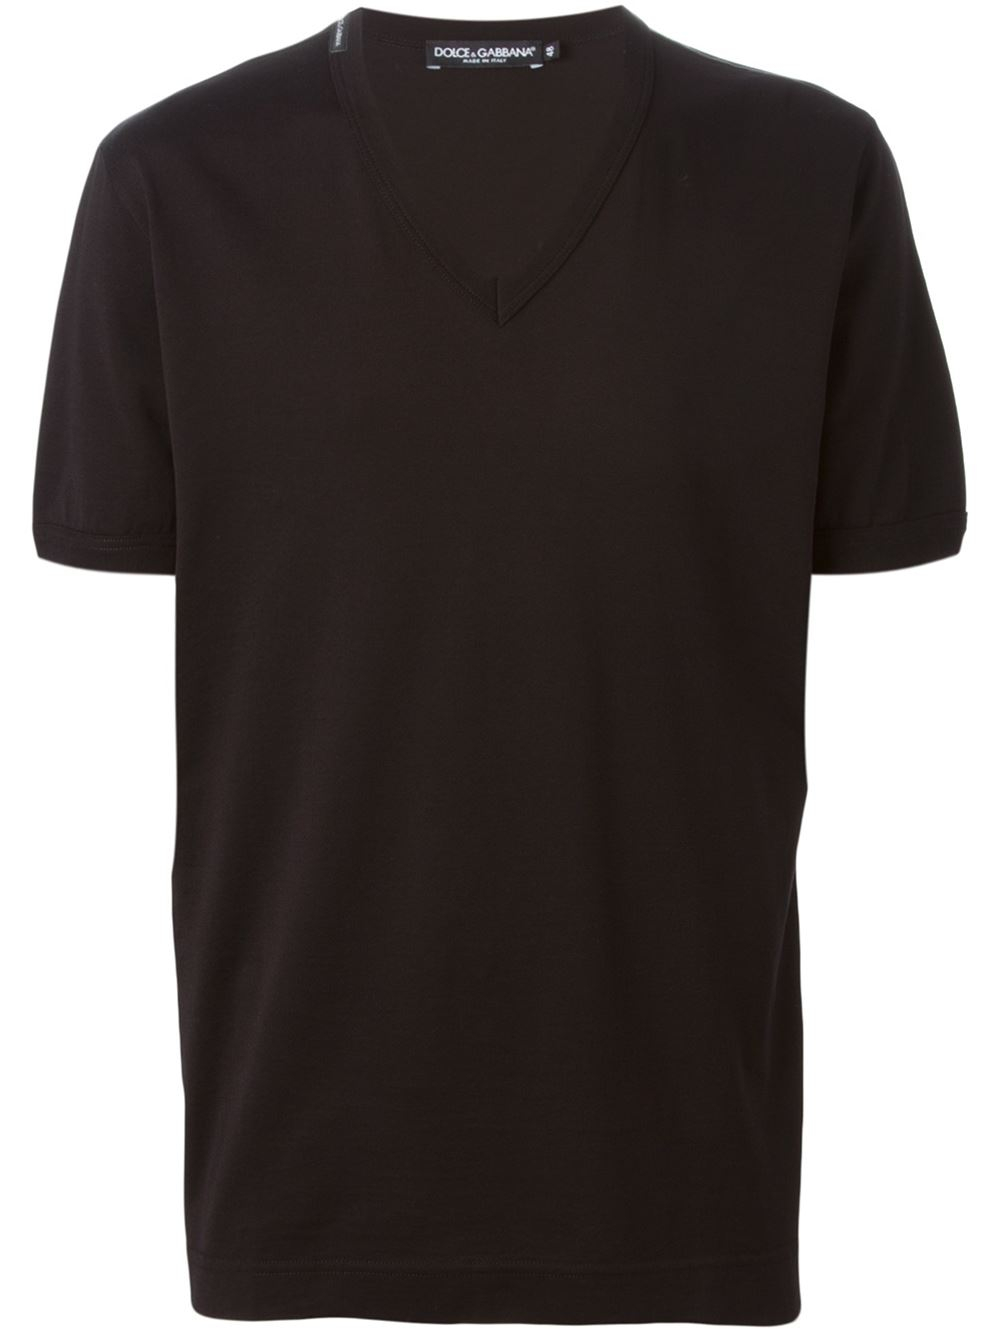 dolce gabbana classic v neck t shirt in black for men lyst